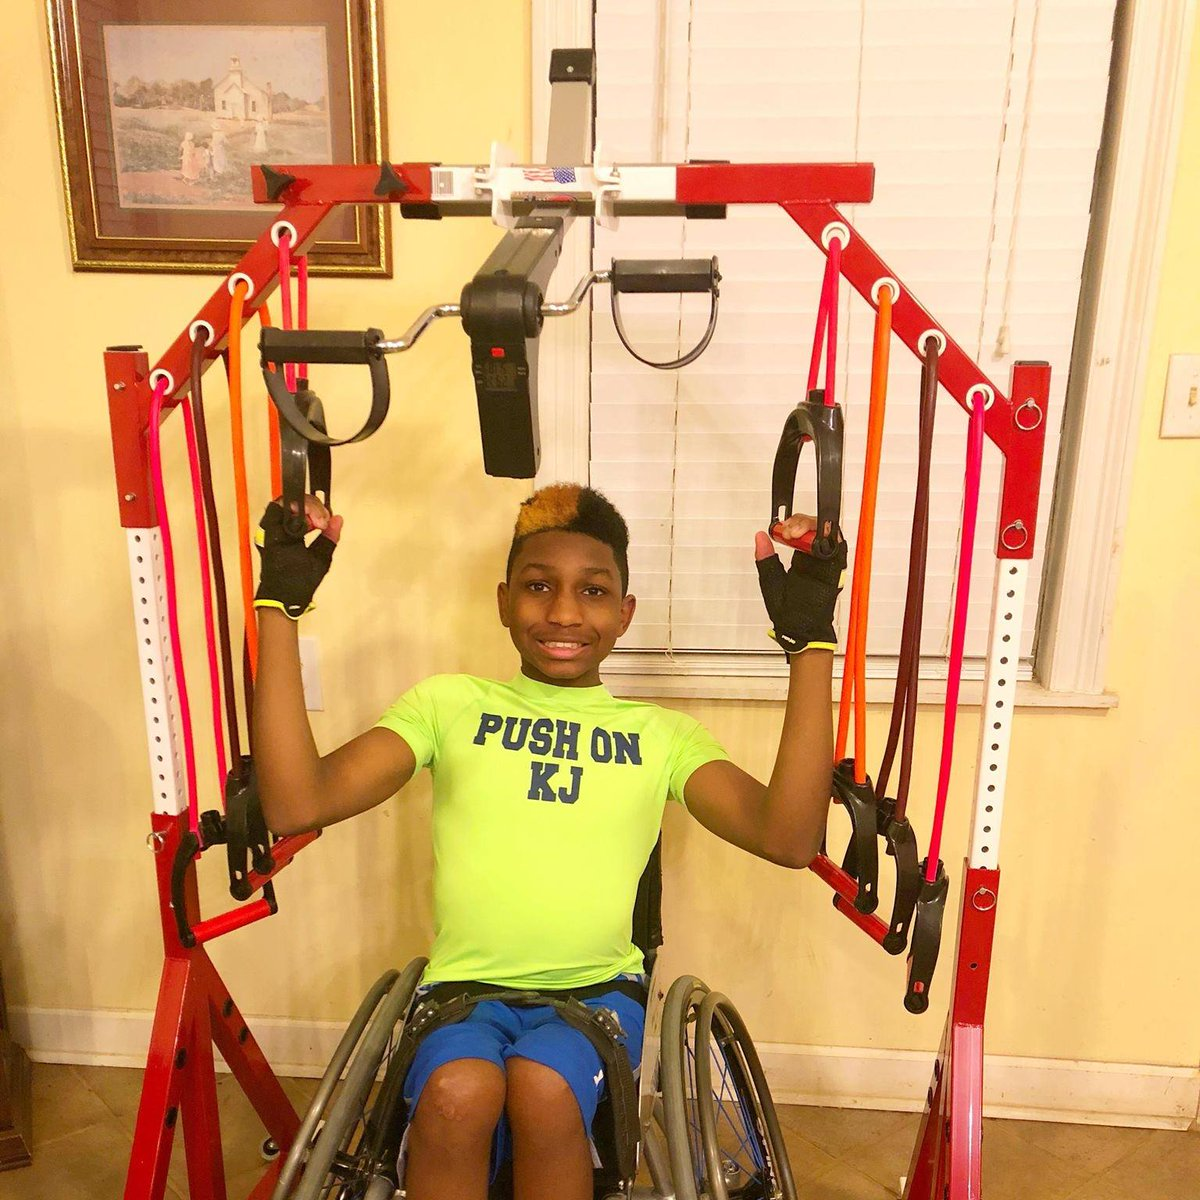 #inclusive #adaptive #adapted #wheelchair #recliner #bed #workout #fitness #portable #exercise #rehab #solution #family #pregnant #injury #surgery .@CNN .@foxnewsradio .@CBS .@NBCNews .@ABC